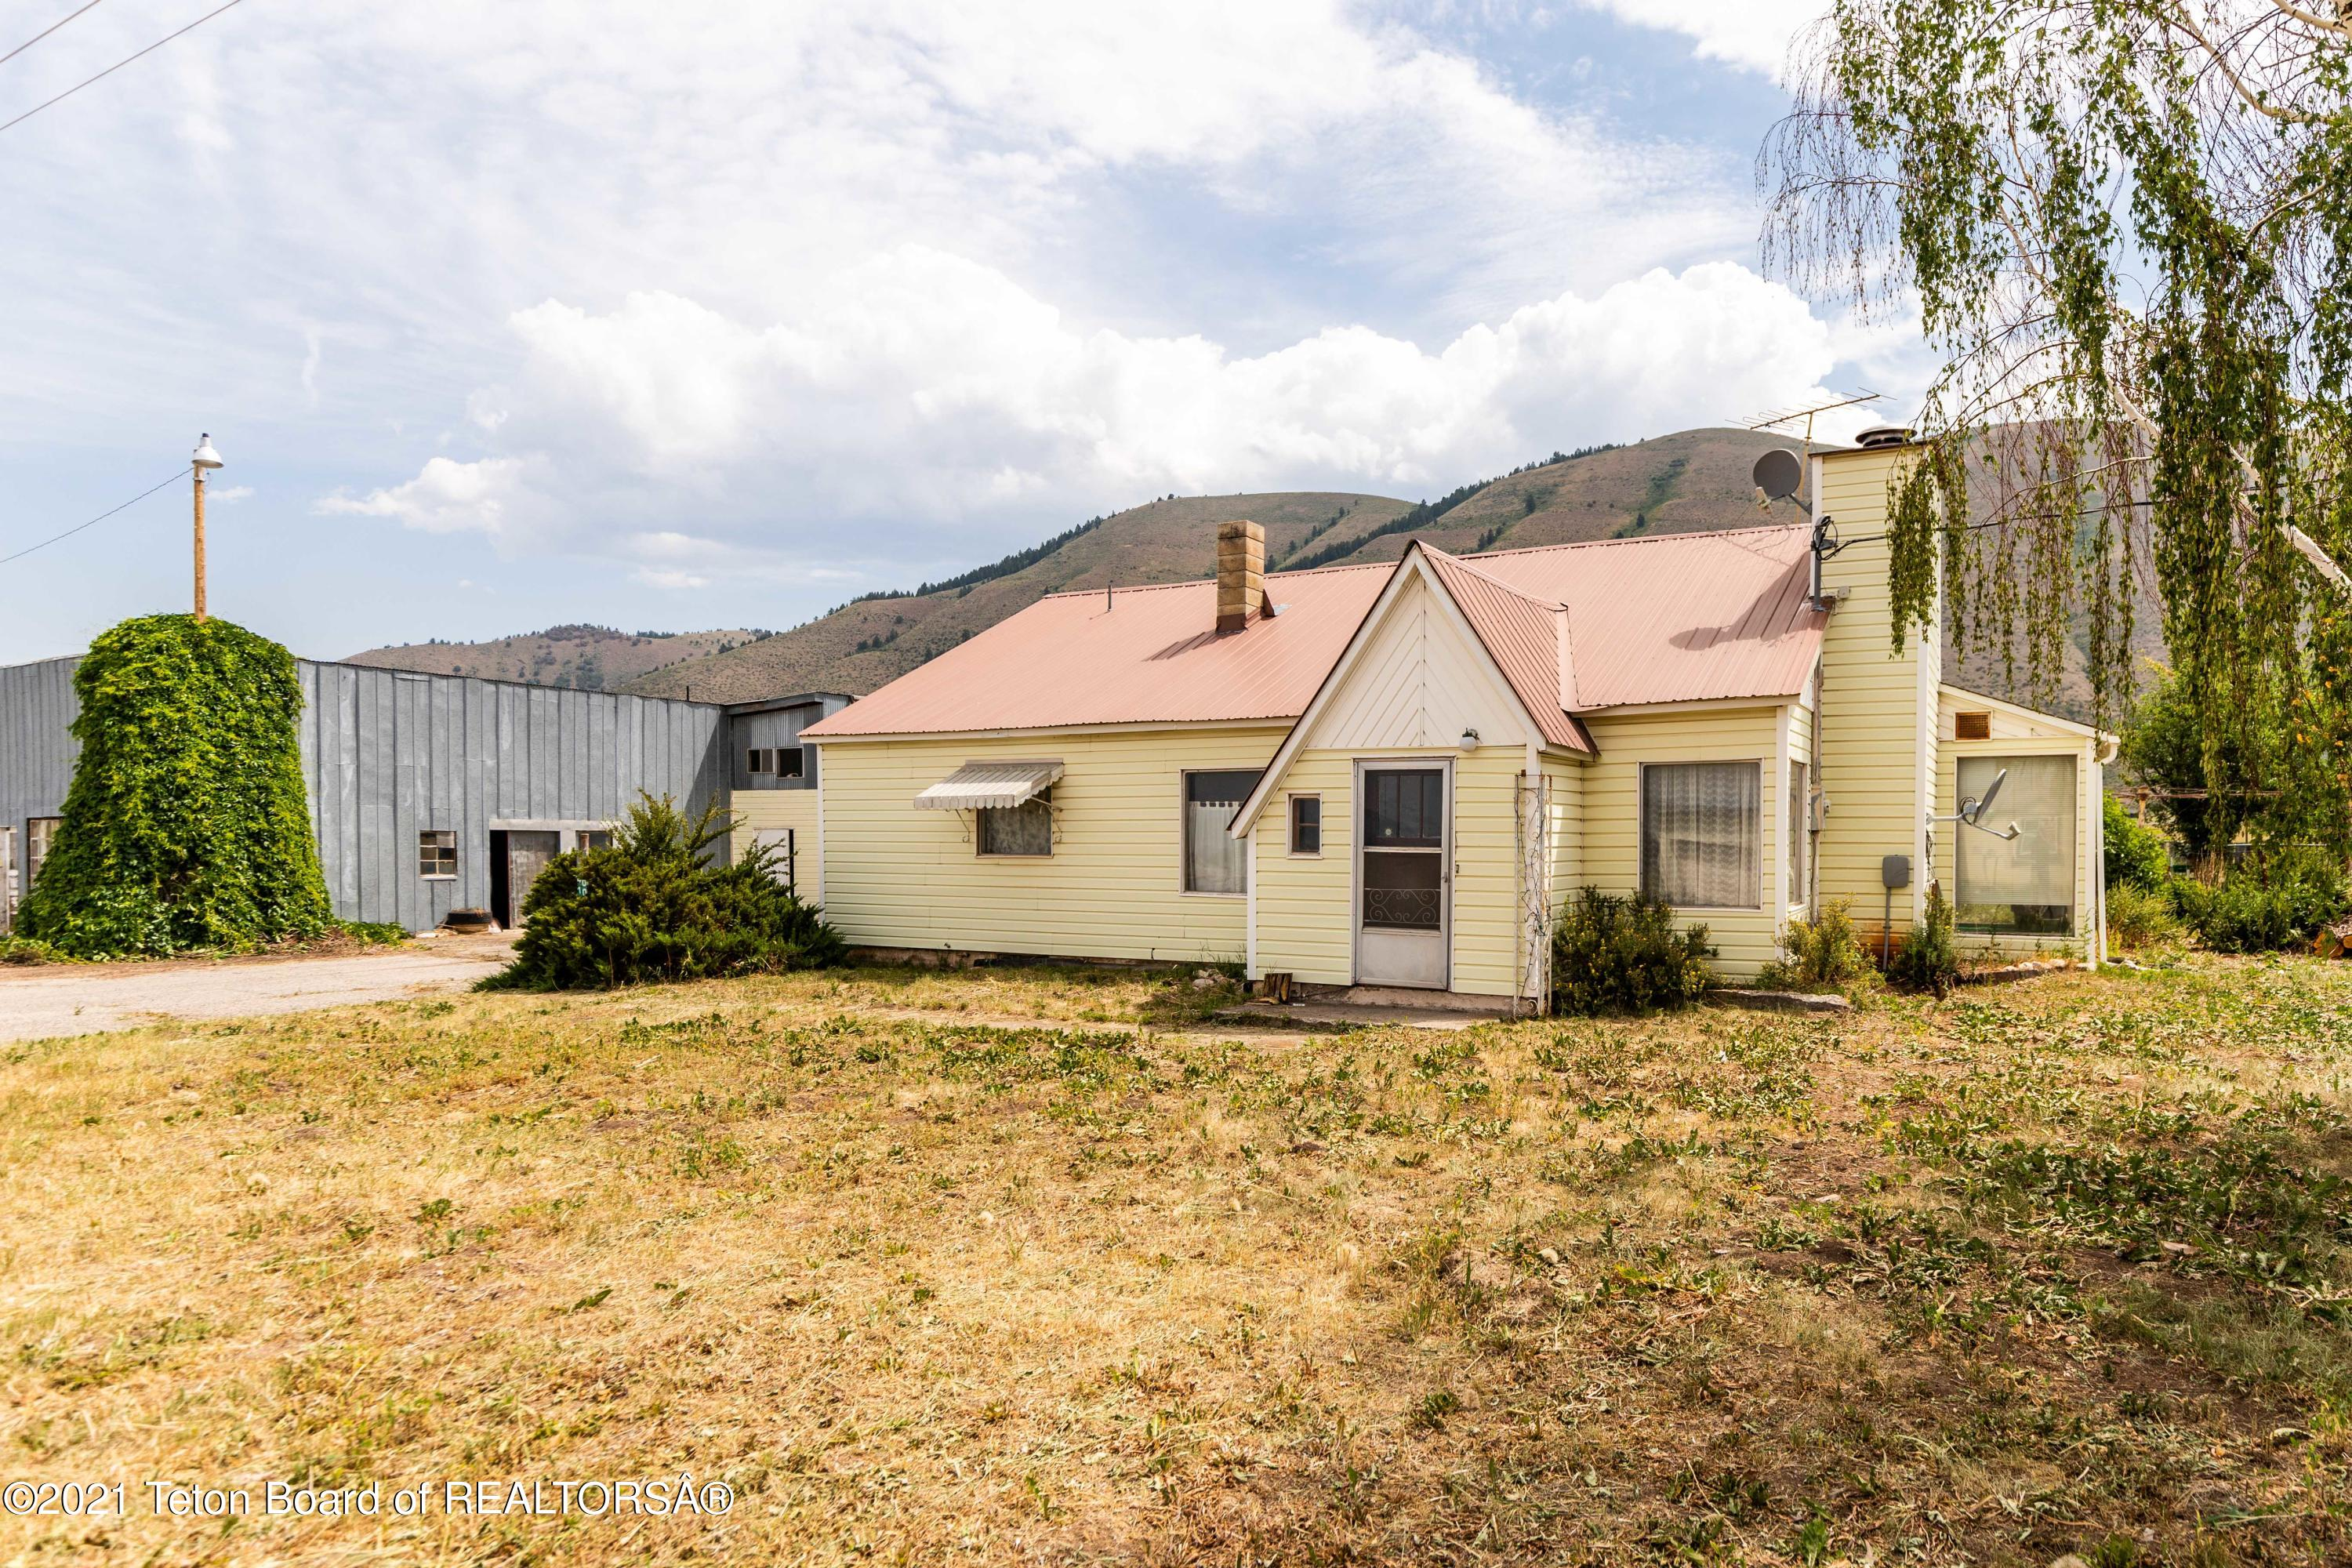 Photo of 4010 HWY 241, Afton, WY 83110